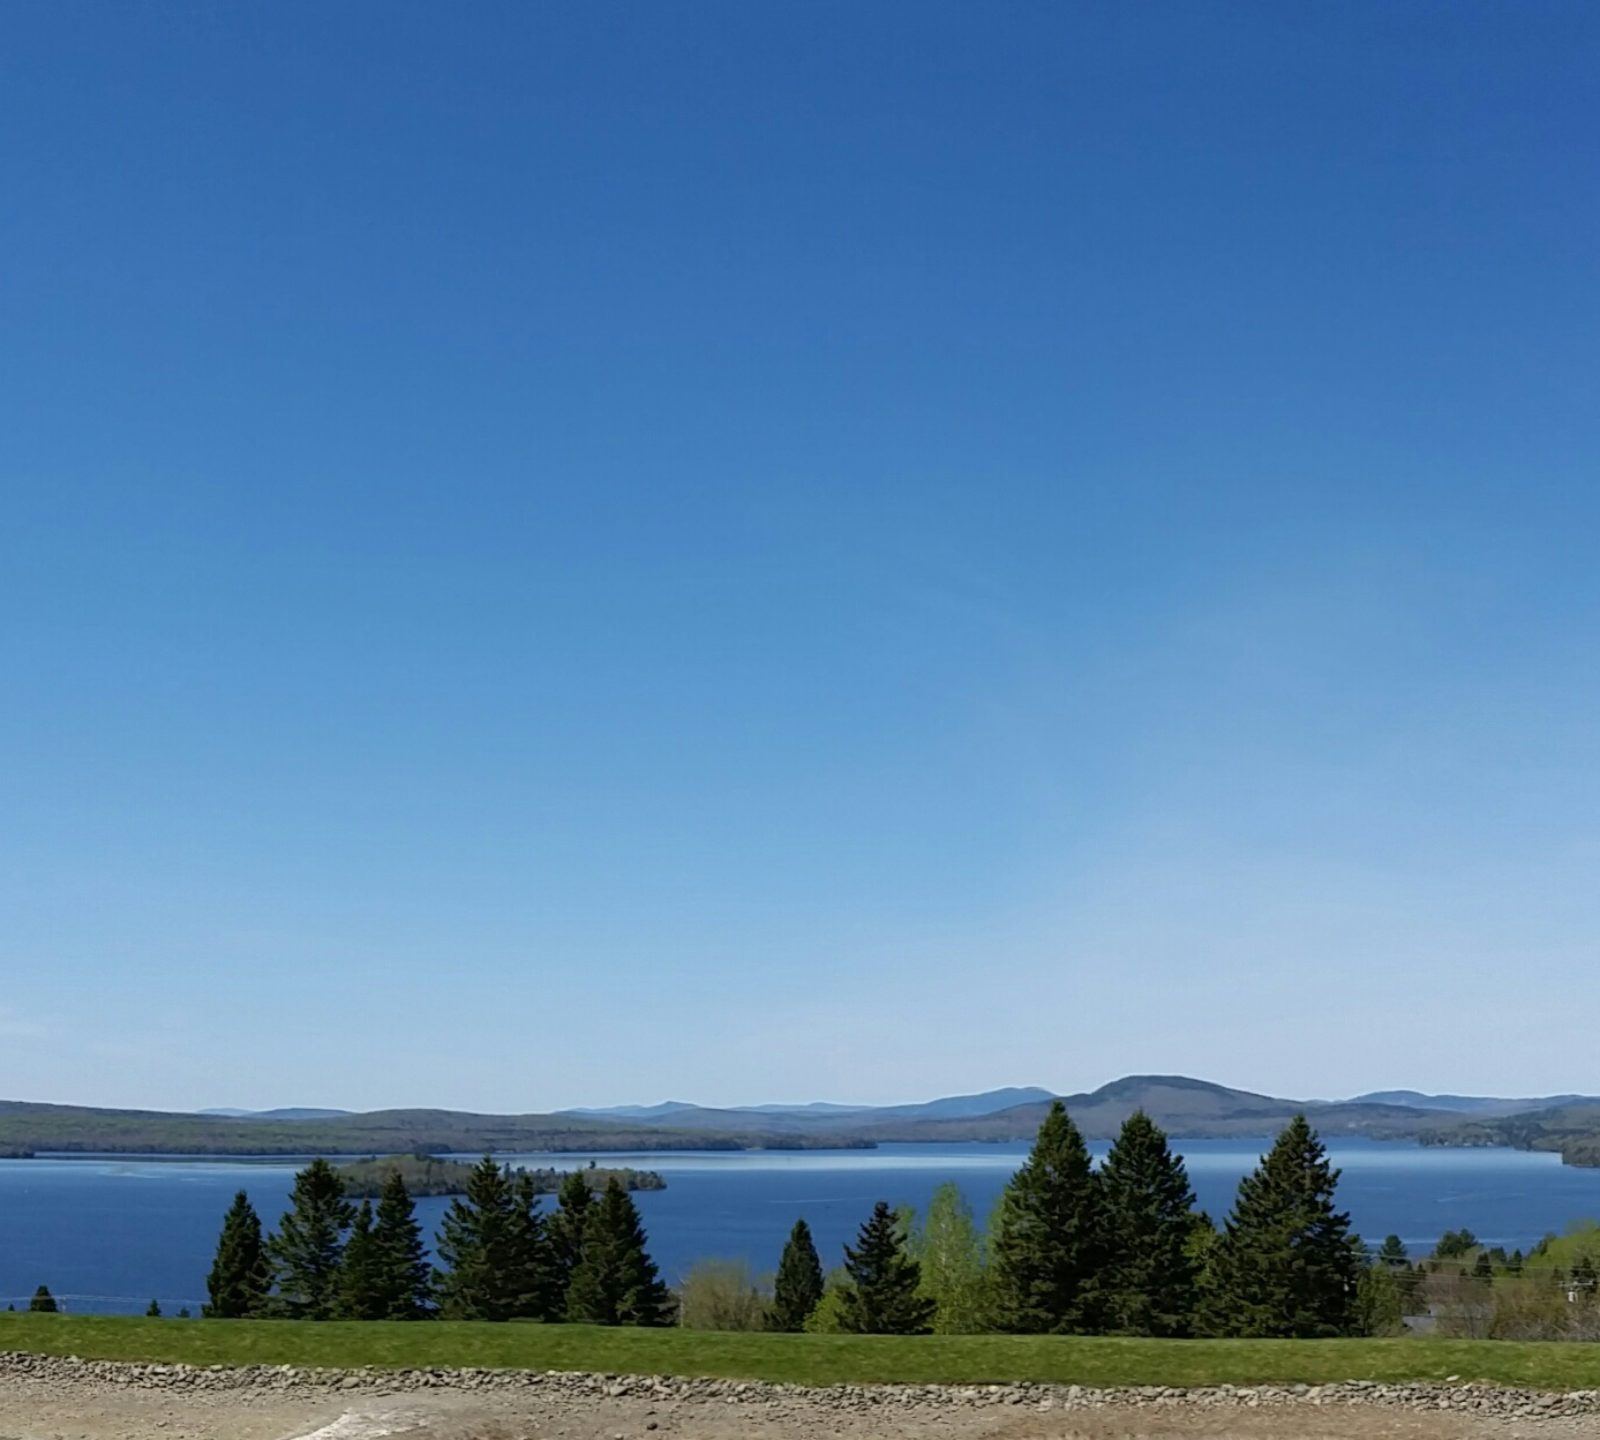 Rangeley, Maine Real Estate | Noyes Real Estate Agency